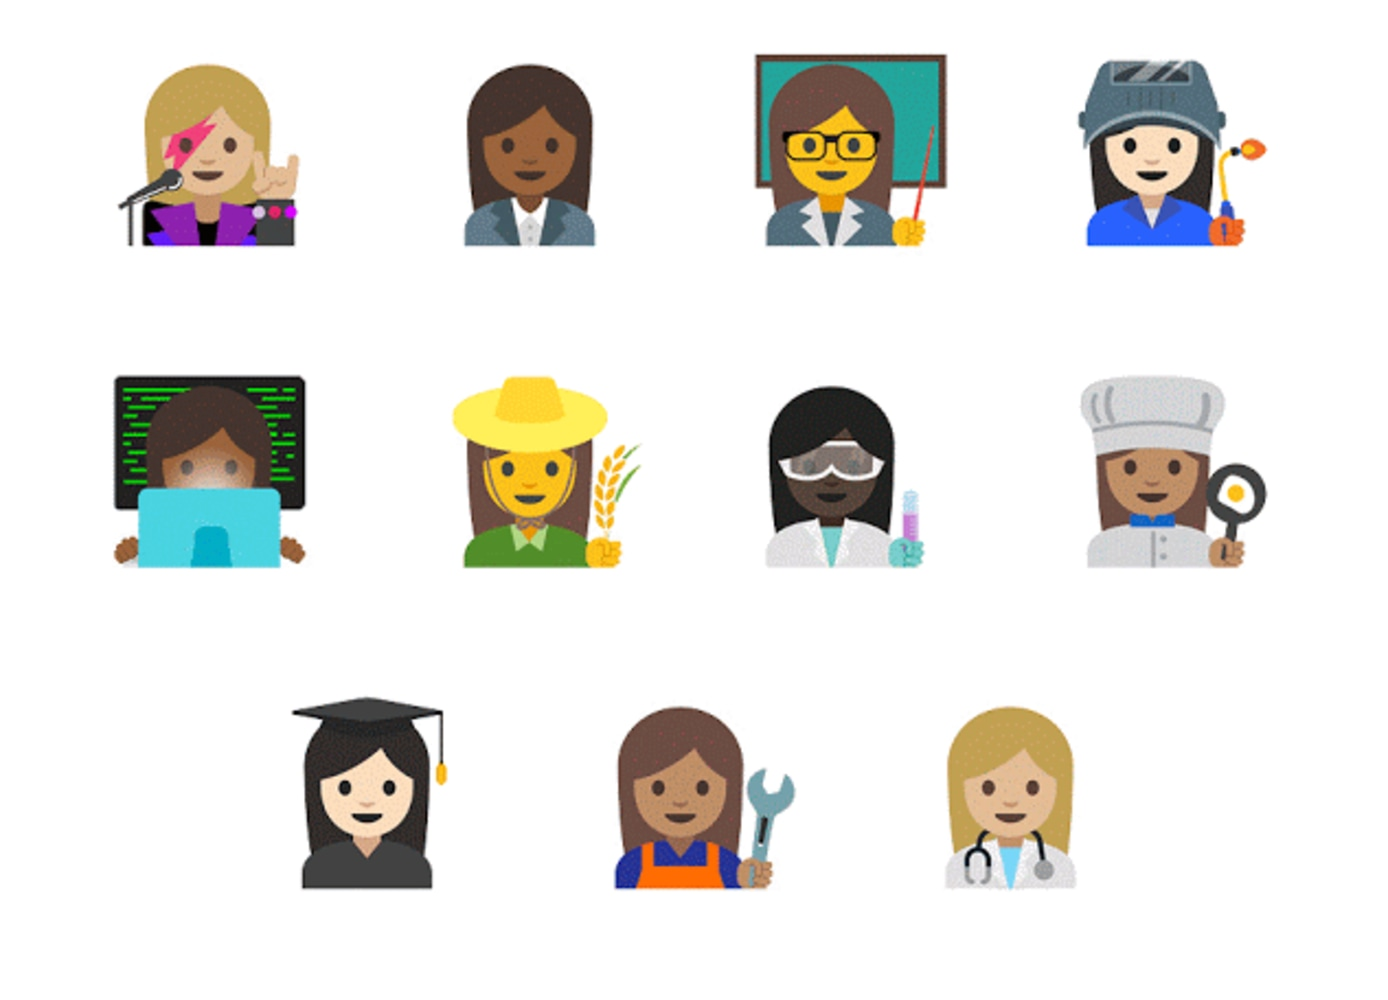 Women doctors, scientists, welders among 11 new emojis